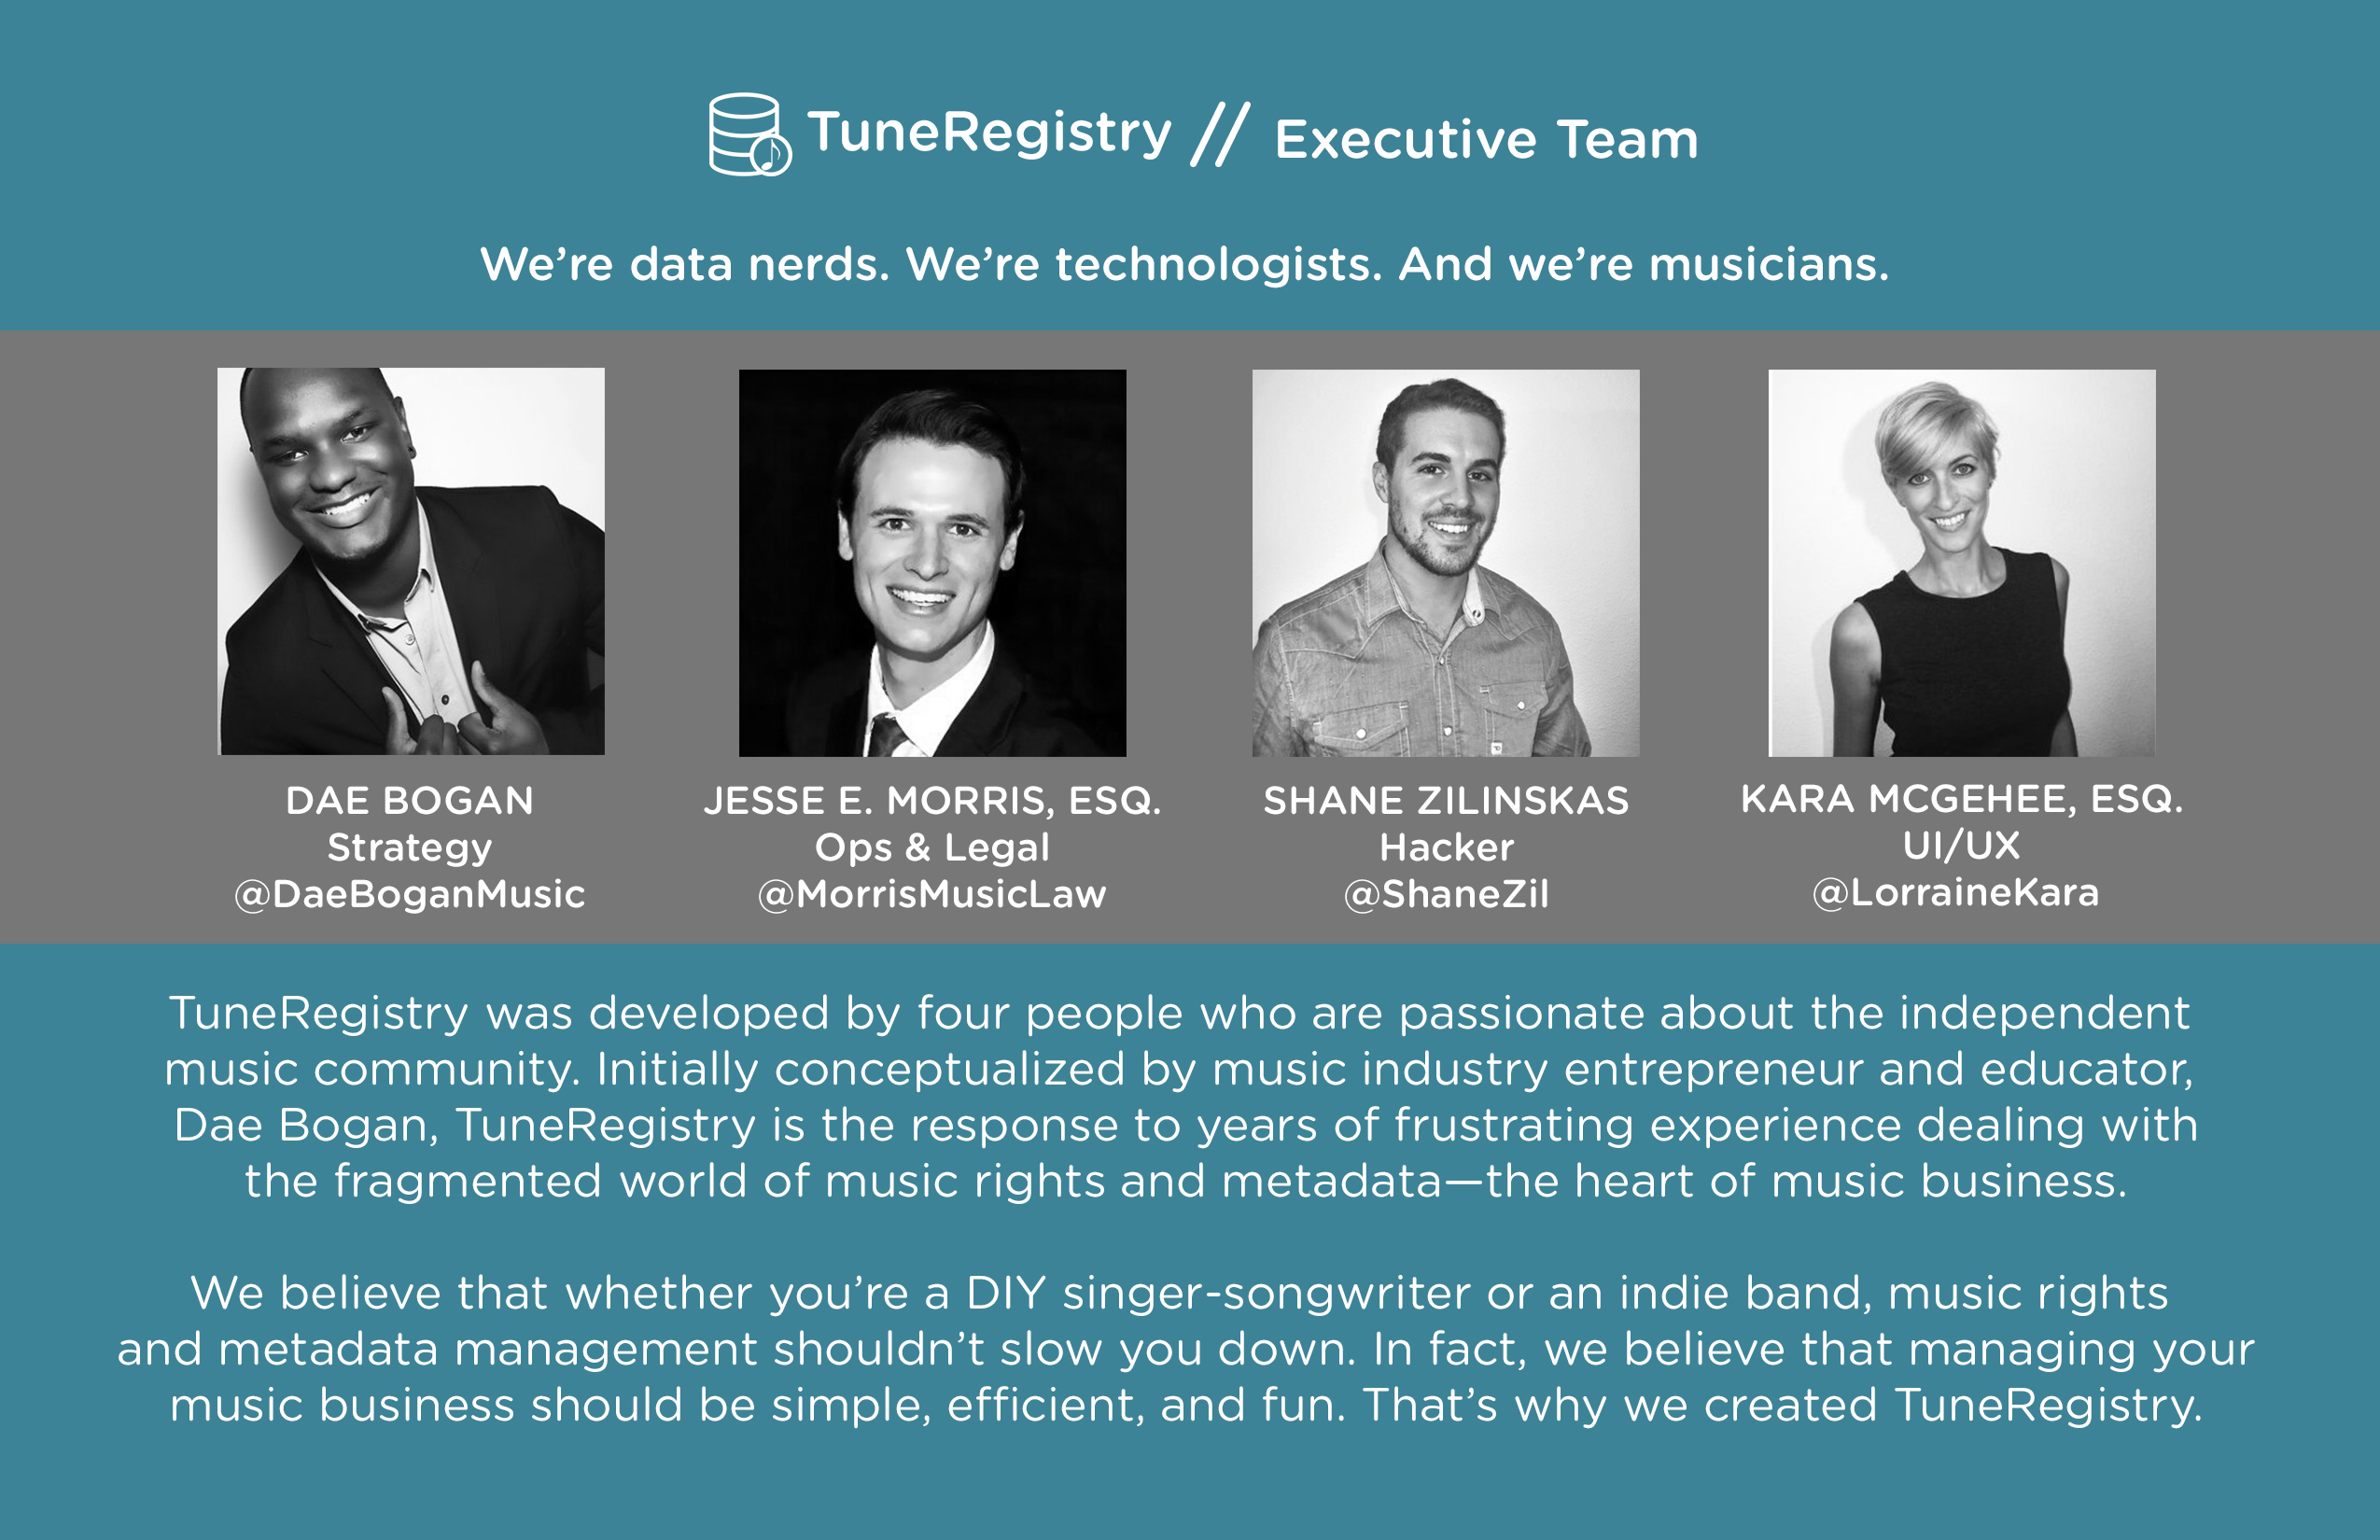 About TuneRegistry 3